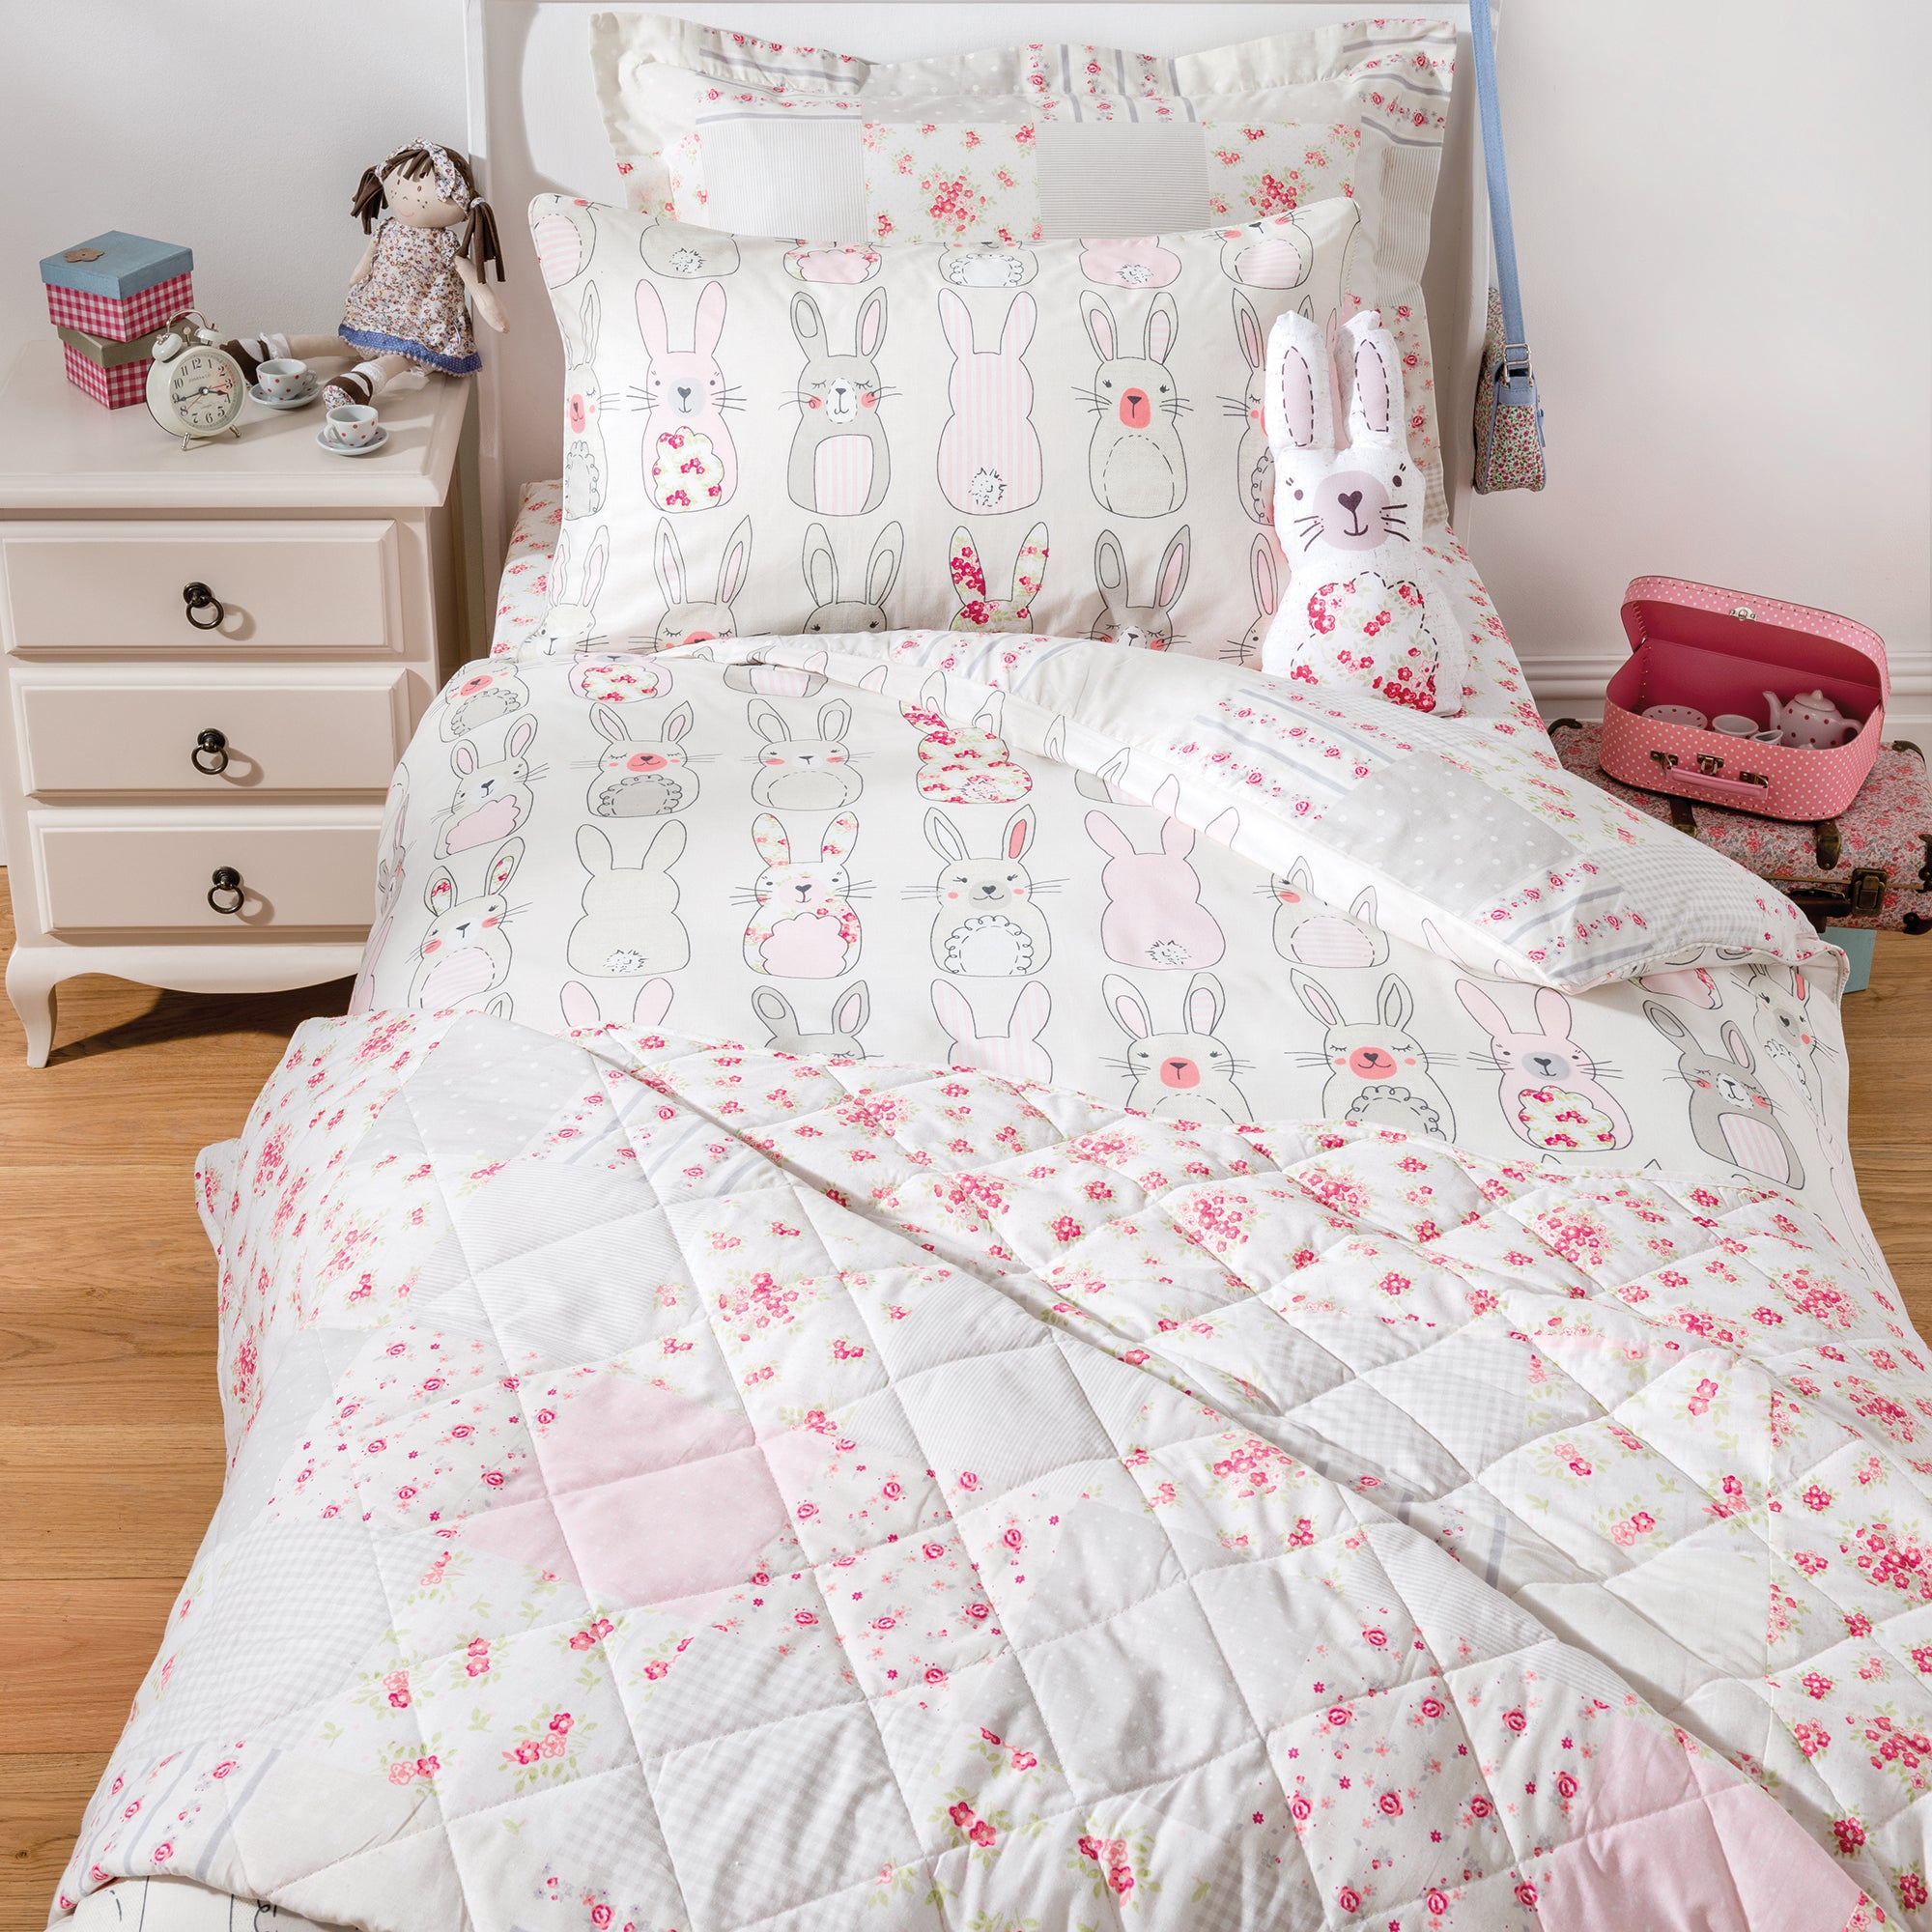 Kids Bedroom Linen kids' bedding sets | dunelm